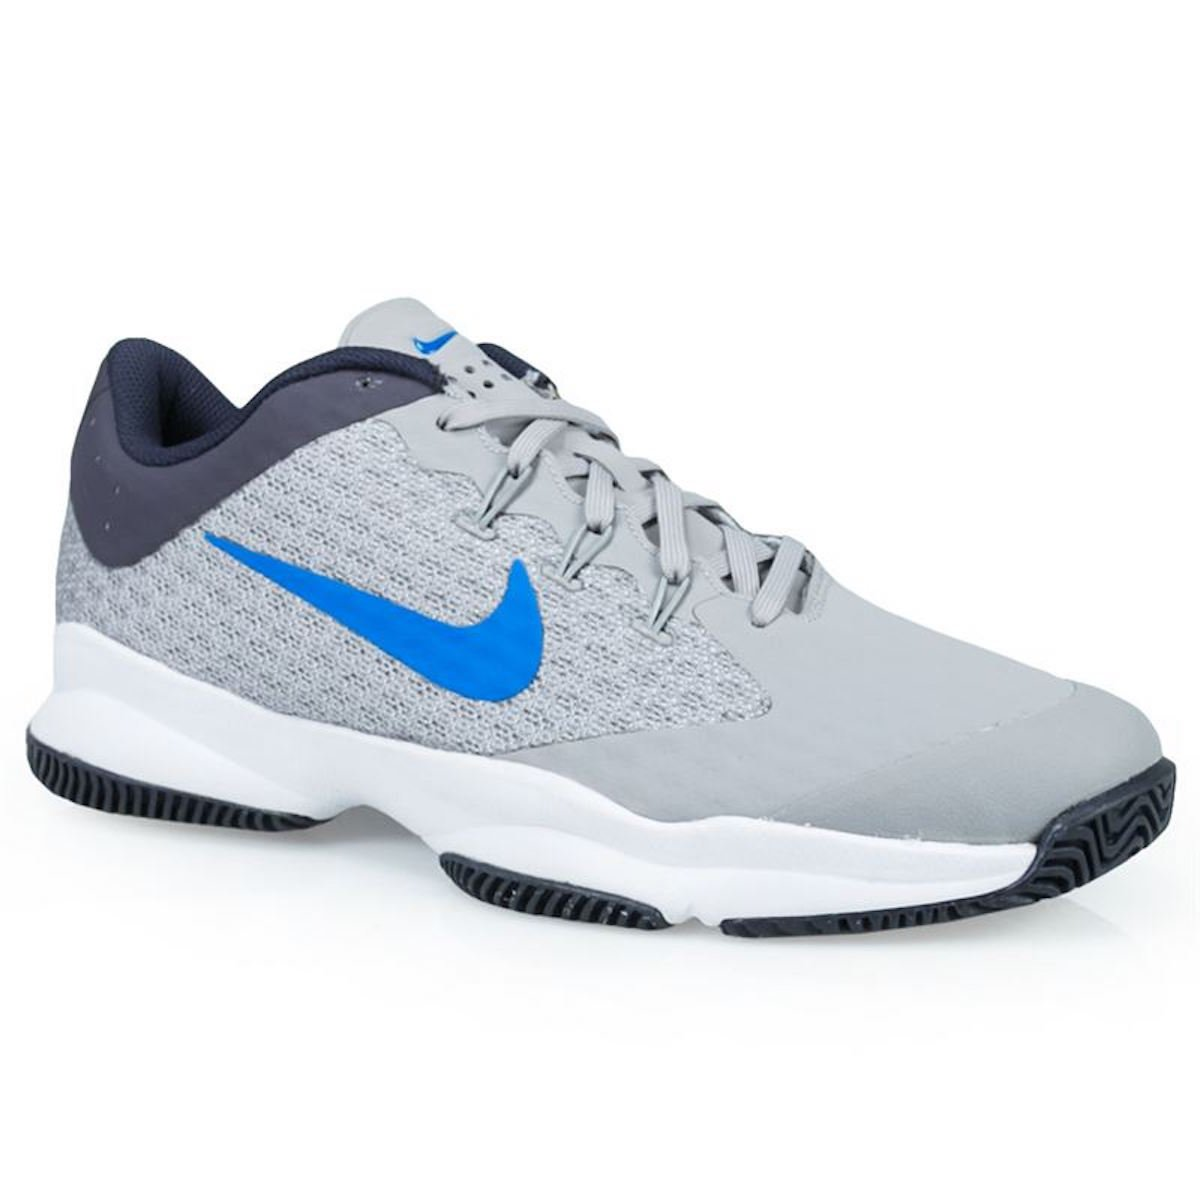 NIKE Men's Air Zoom Ultra Tennis Shoe (10.5 D(M) US, Atmosphere Grey/White/Gridiron/Photo Blue)